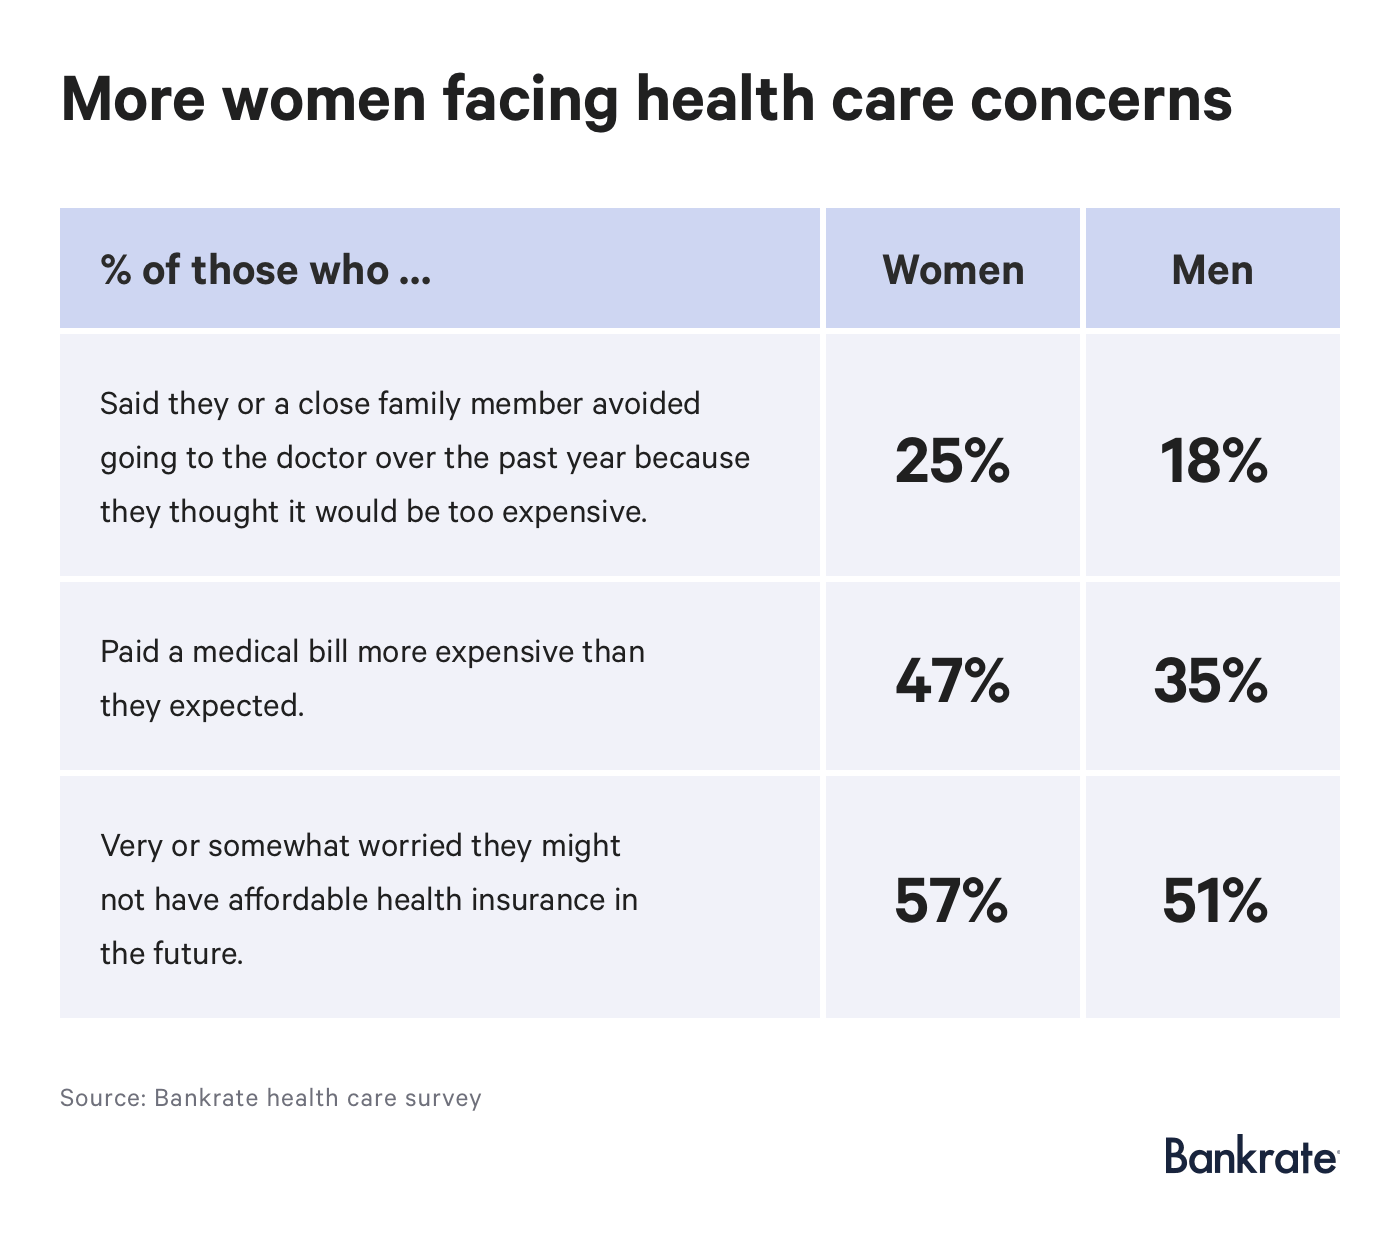 Survey: More women facing health care concerns